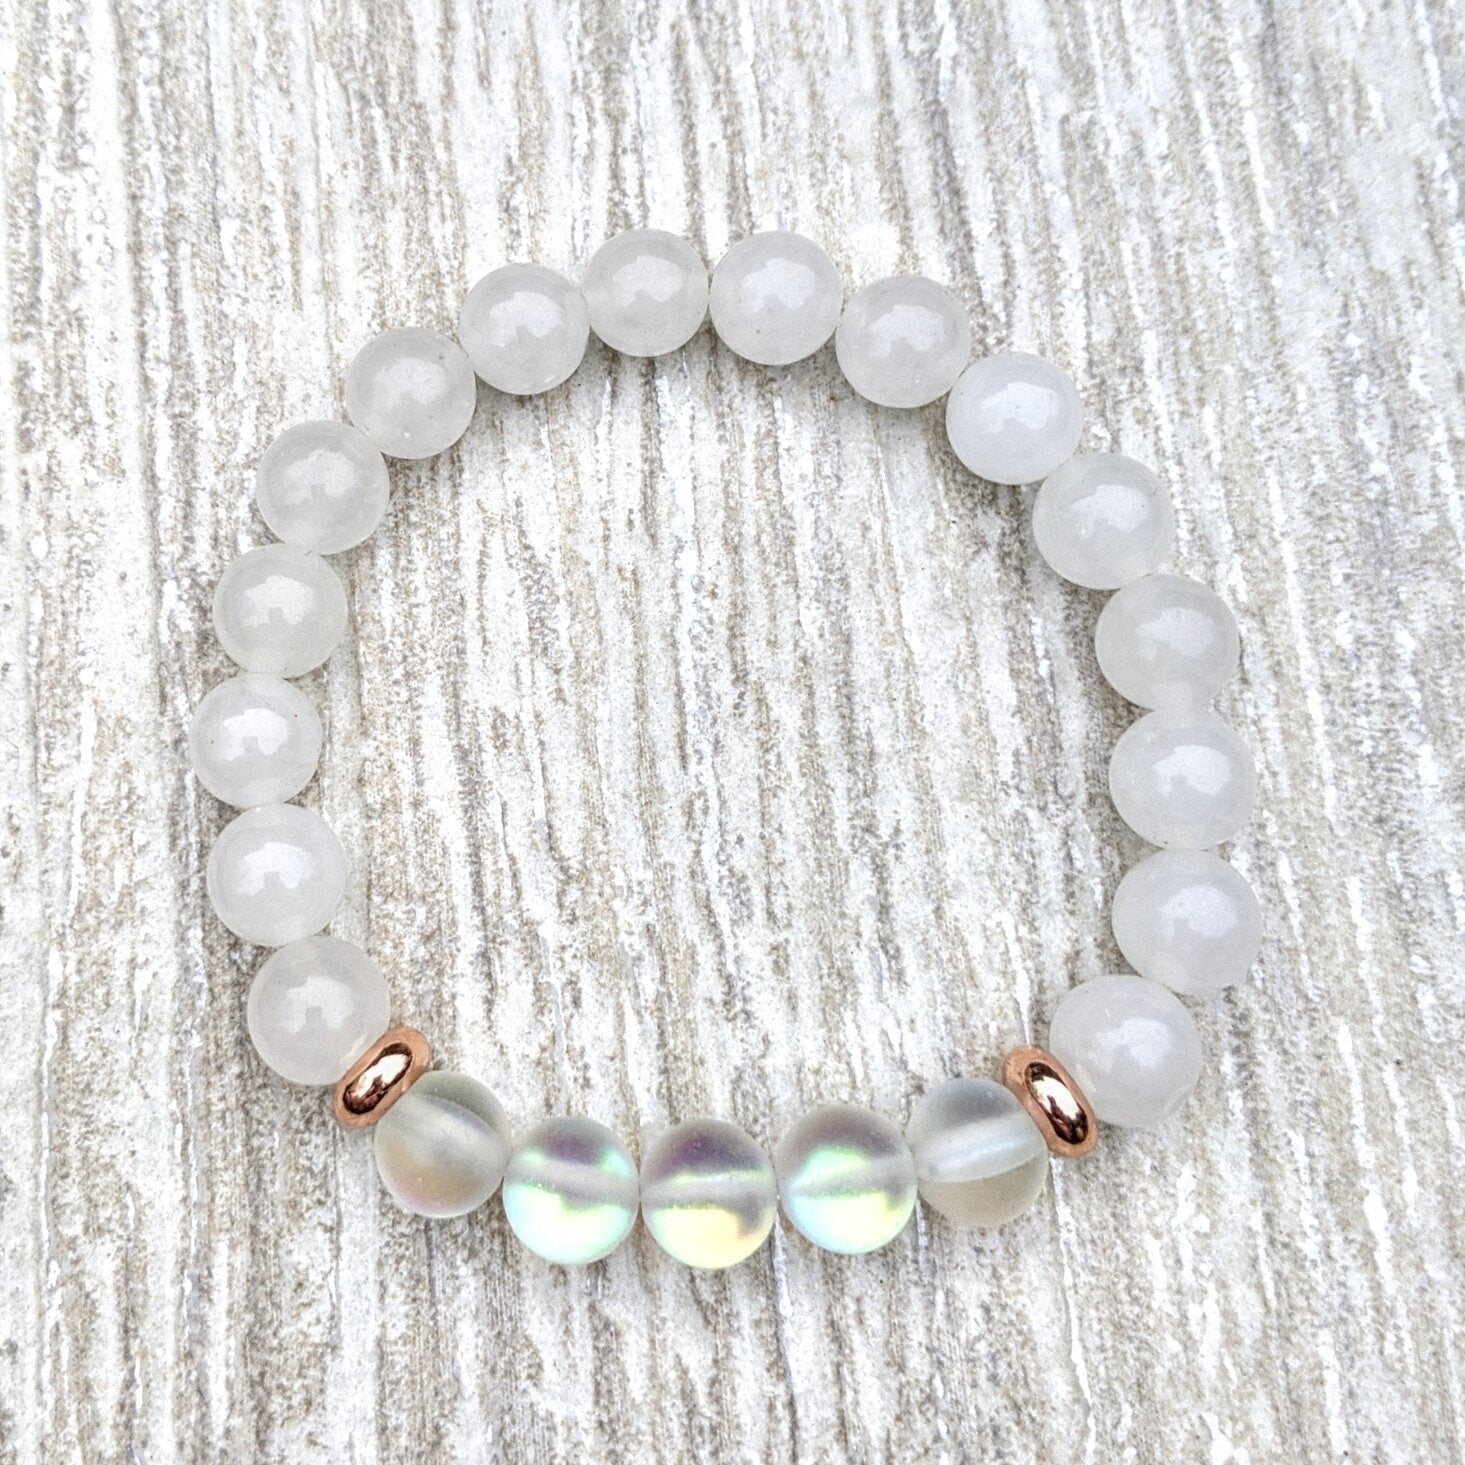 MOONSTONE JADE - Crystal Gemstone Bracelet - Femme Wares Niagara Local Small Business